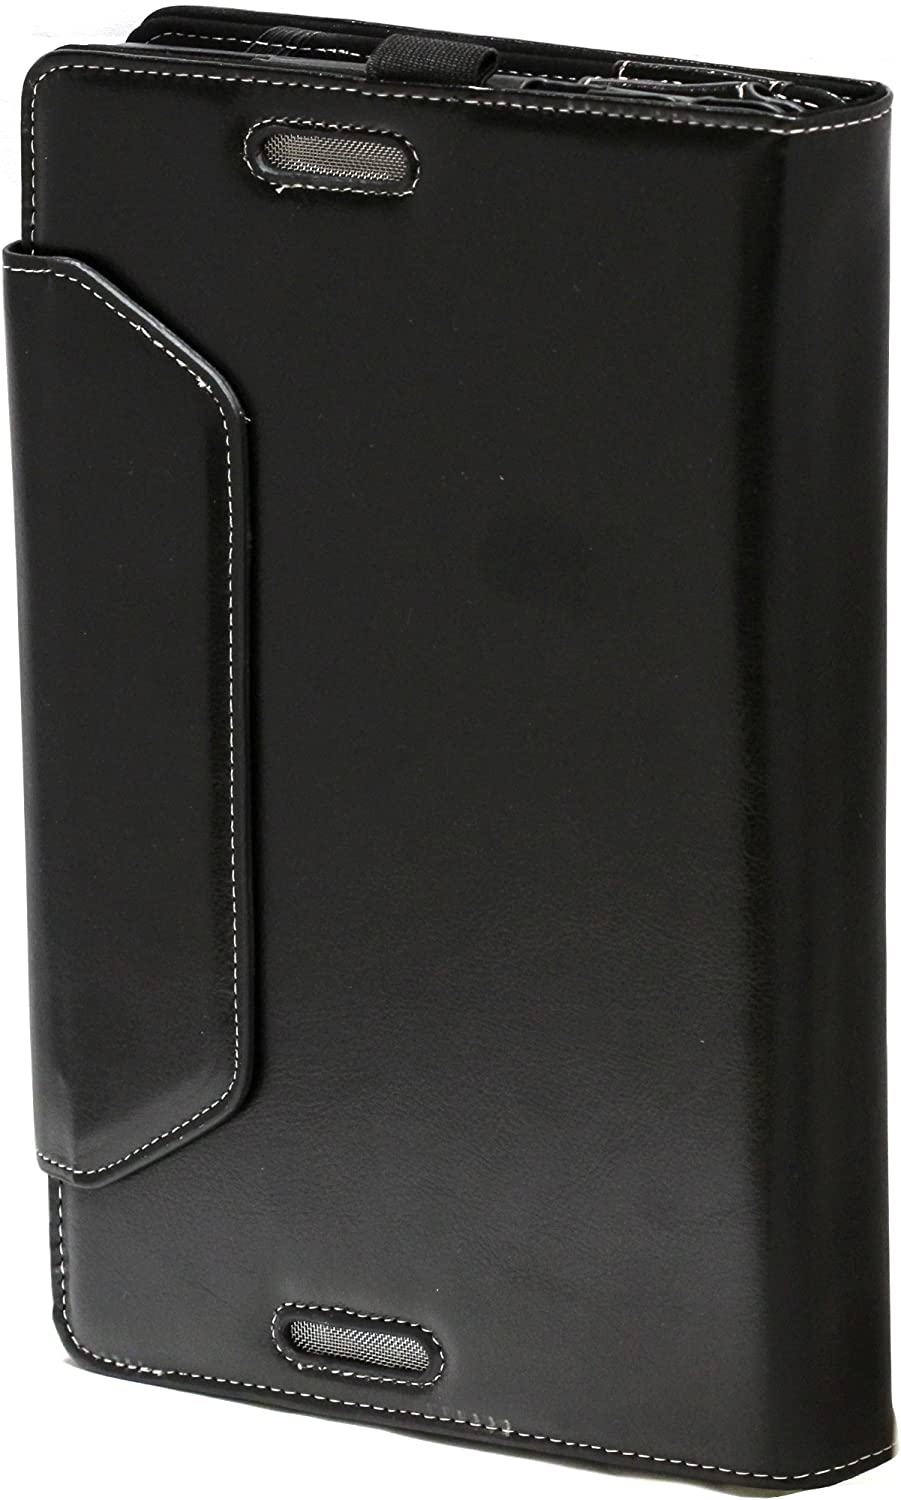 Navitech Black Faux Leather Folio Case Cover Sleeve For The Asus Transformer Book T300CHI-F1-DB